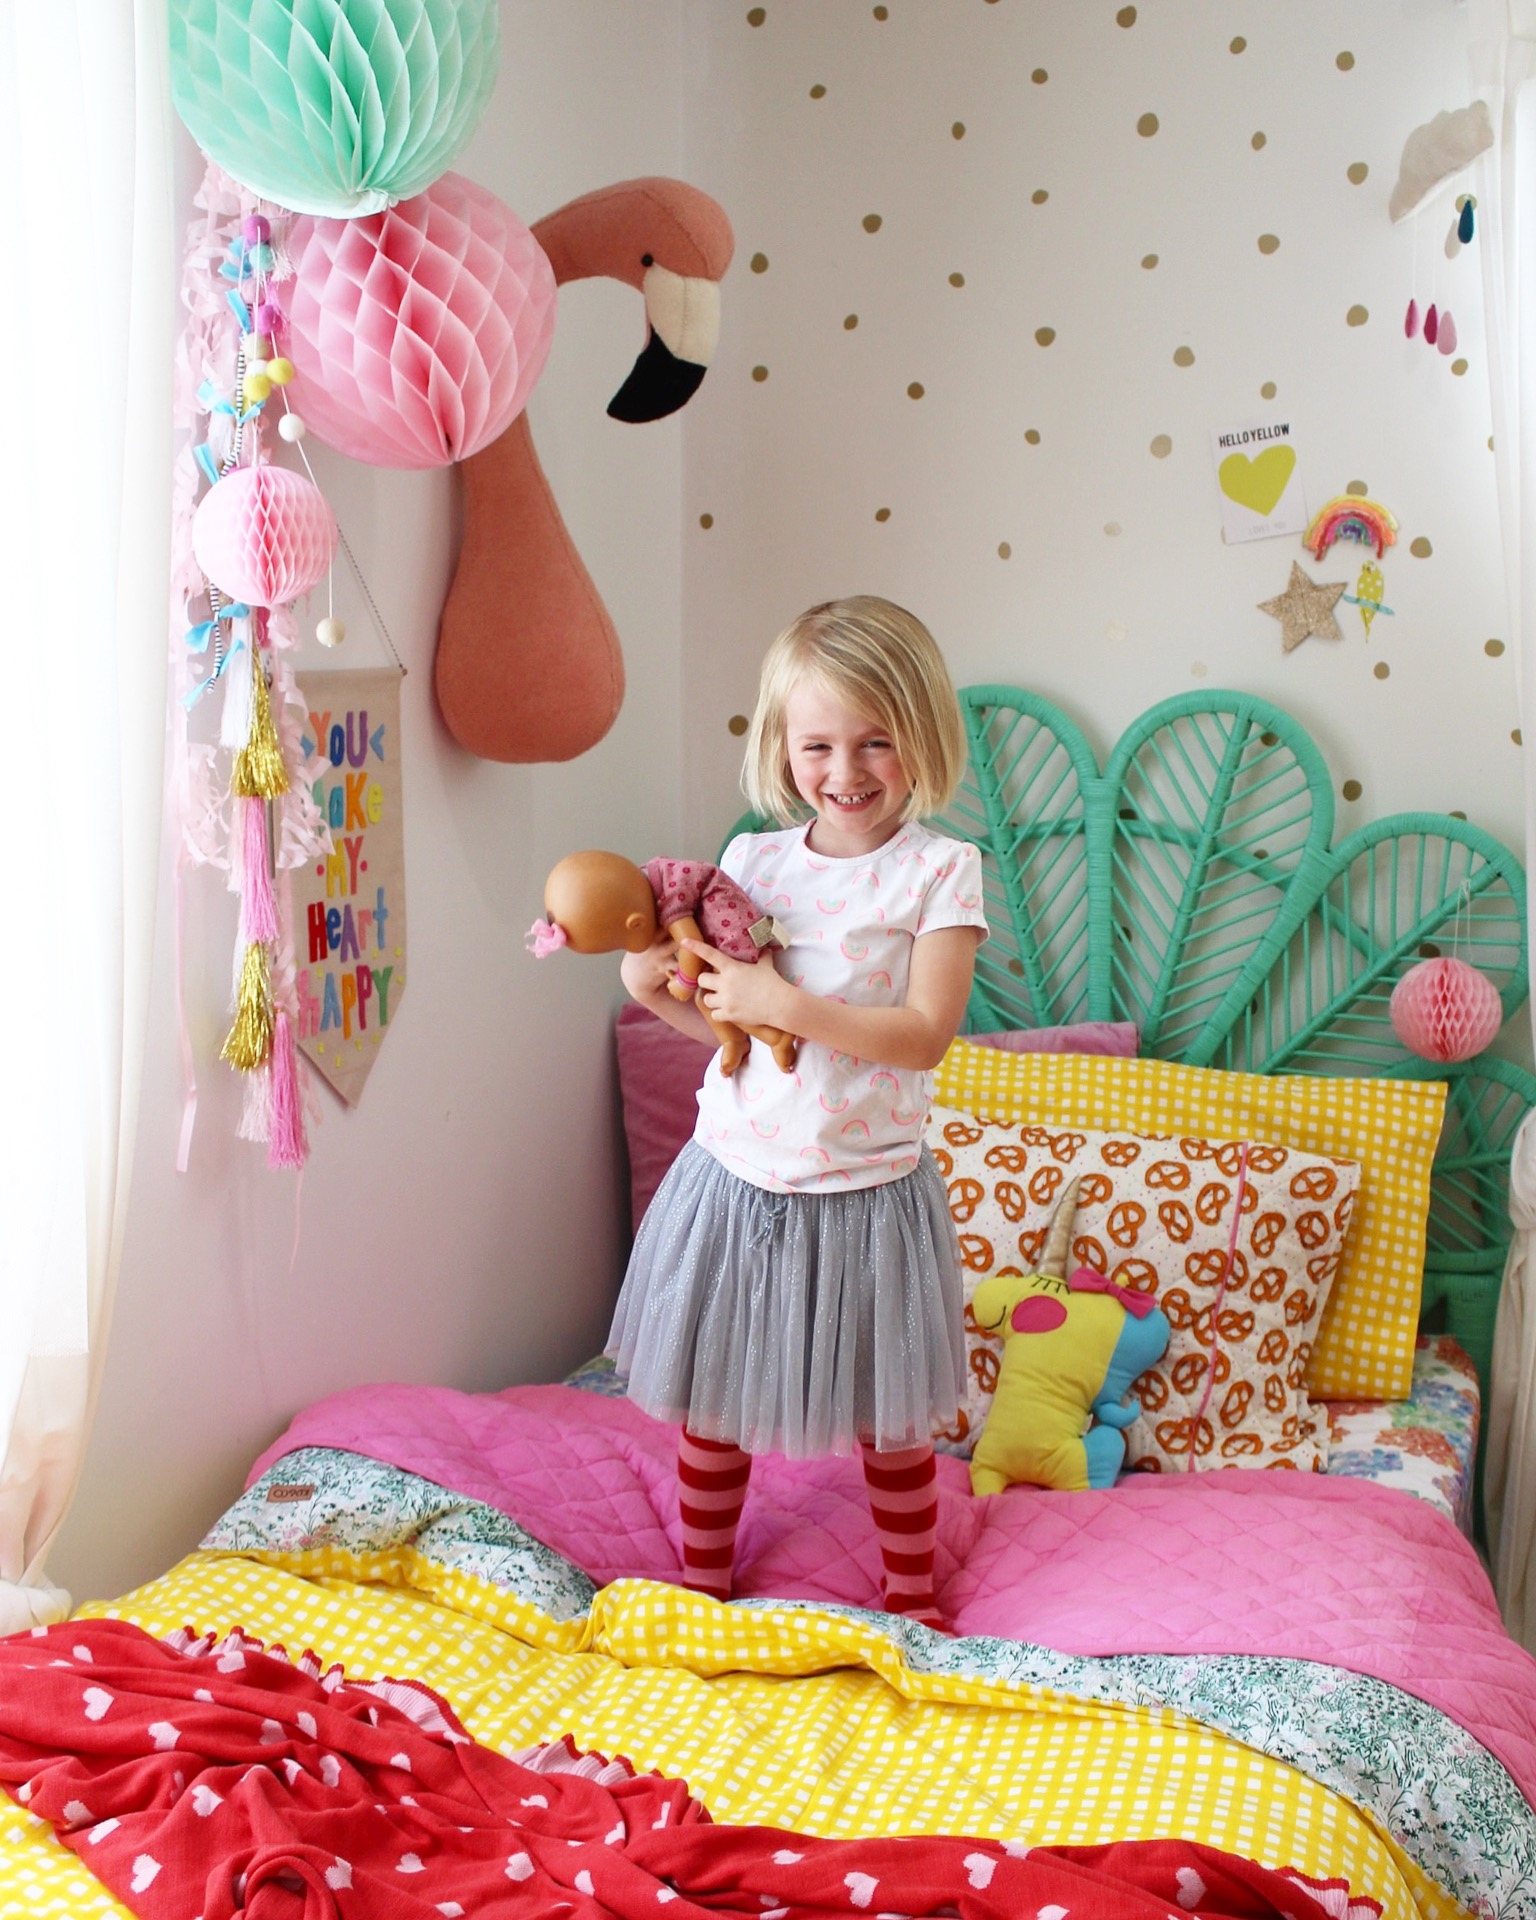 Rainbow Bedroom Ideas Kids Bedroom Ideas Rainbow Room Decor For Girls More On